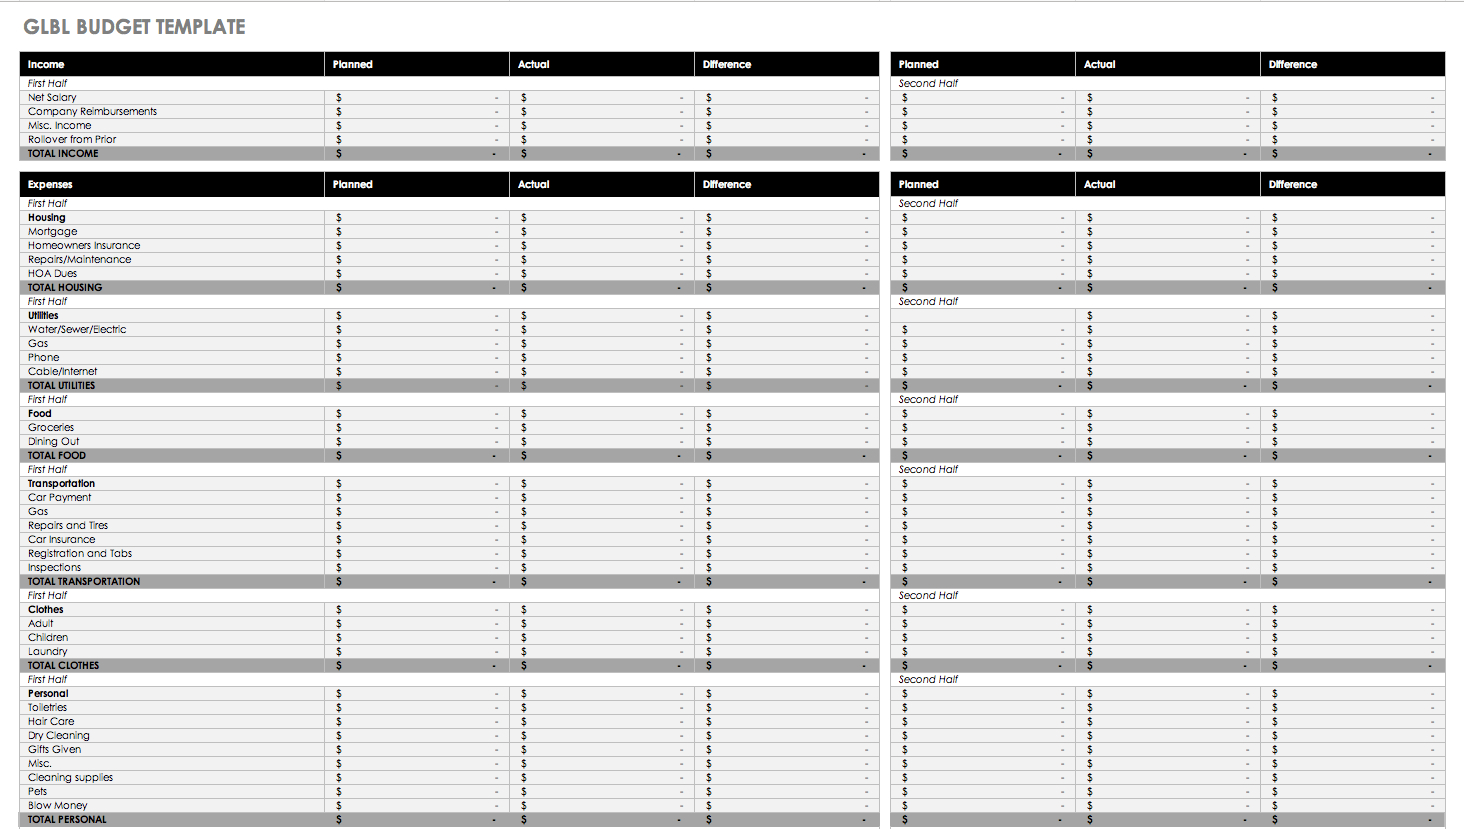 Daily Budget Spreadsheet Inside Free Budget Templates In Excel For Any Use